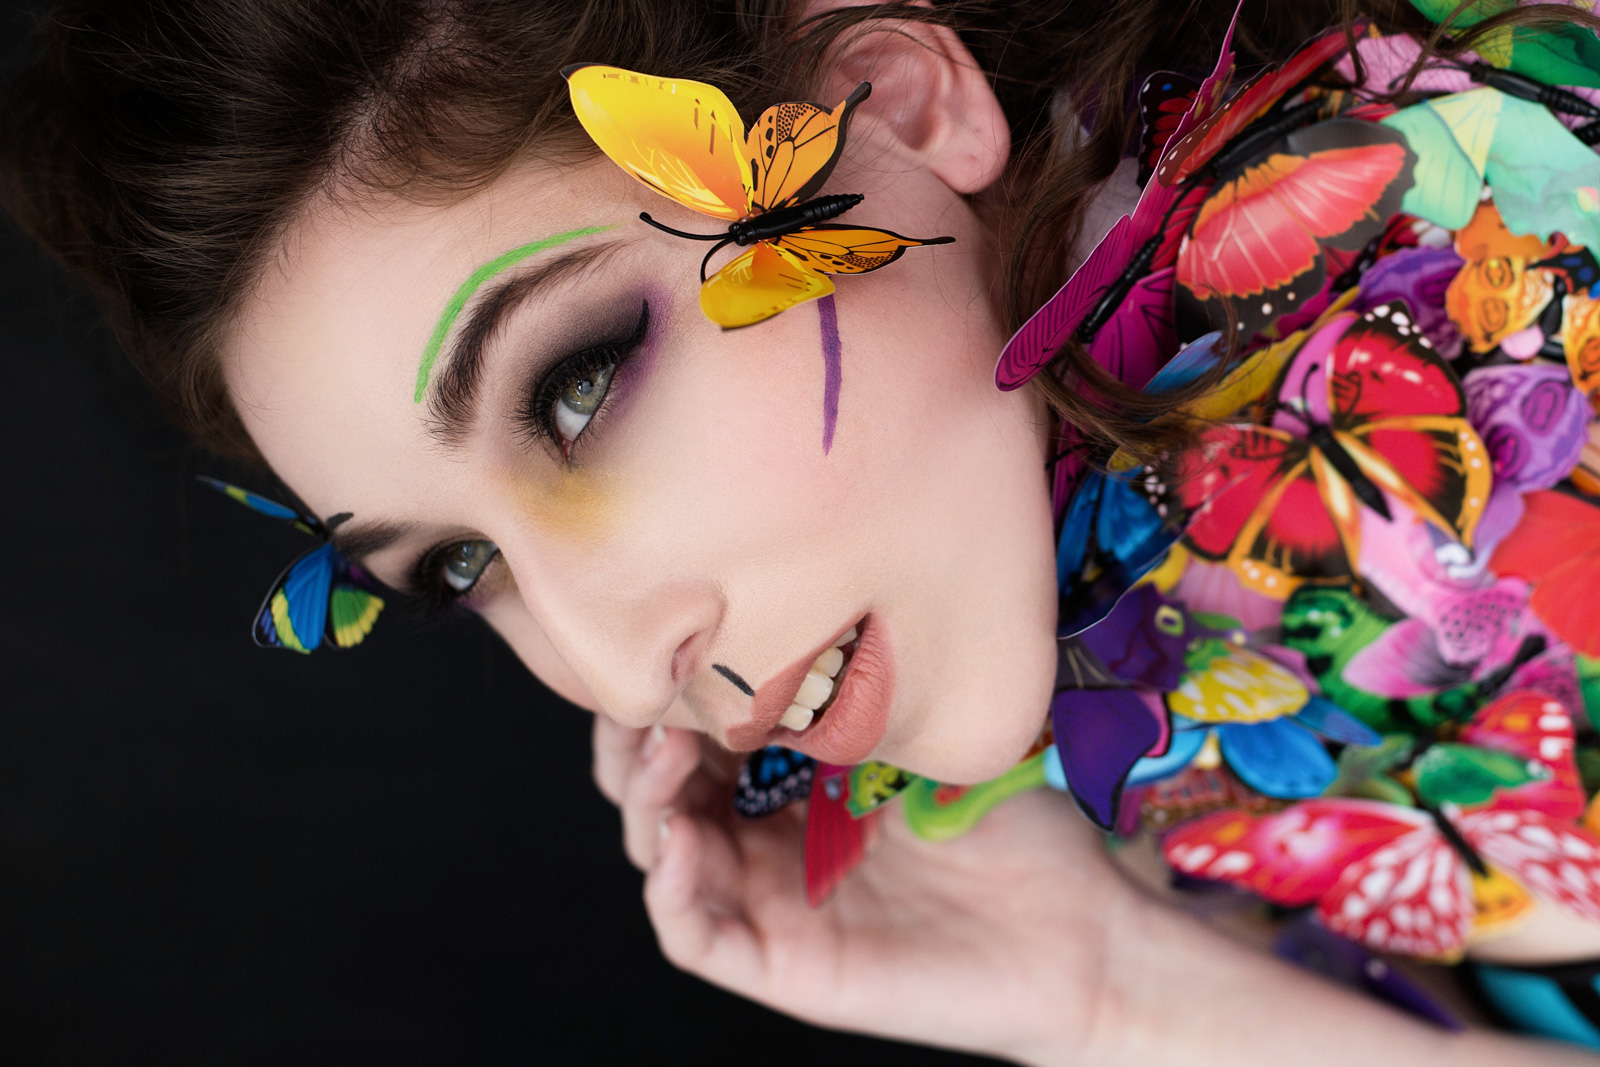 yuliya rae seattle fashion portrait creative photographer butterfly chrysalis